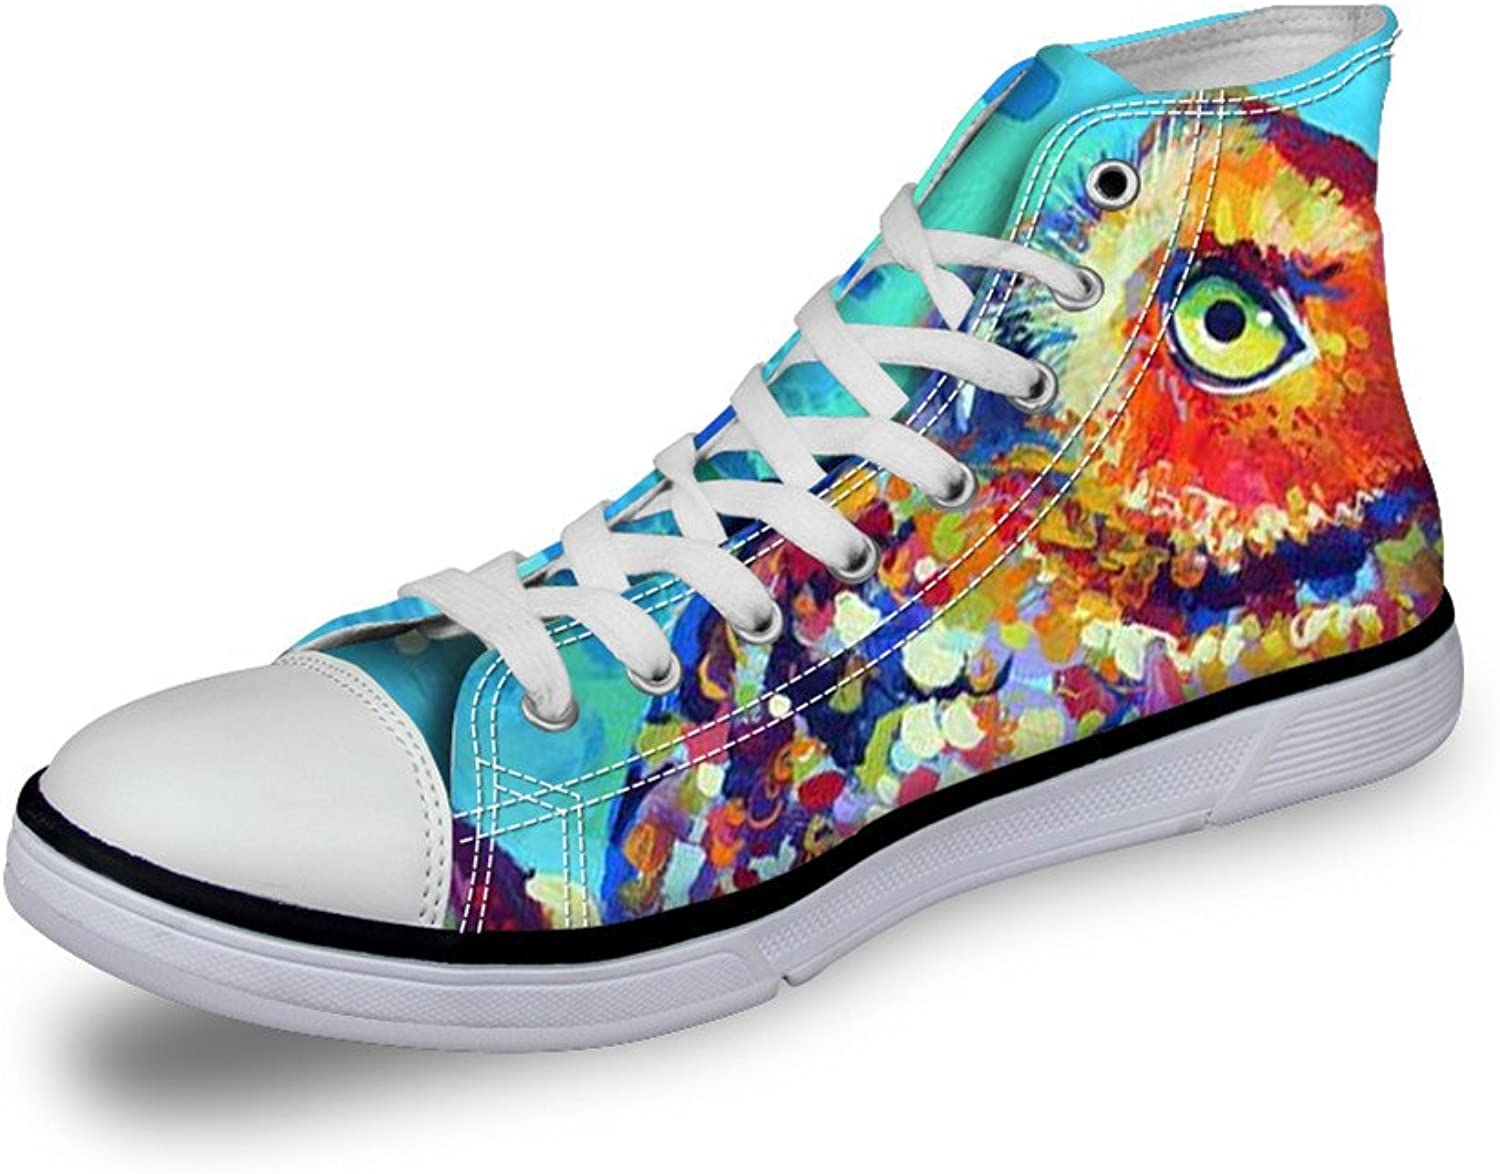 FOR U DESIGNS Fashion Unisex Owl Wolf Horse Animal Print High Top Lace Up shoes Casual Canvas Sneakers for Women and Men